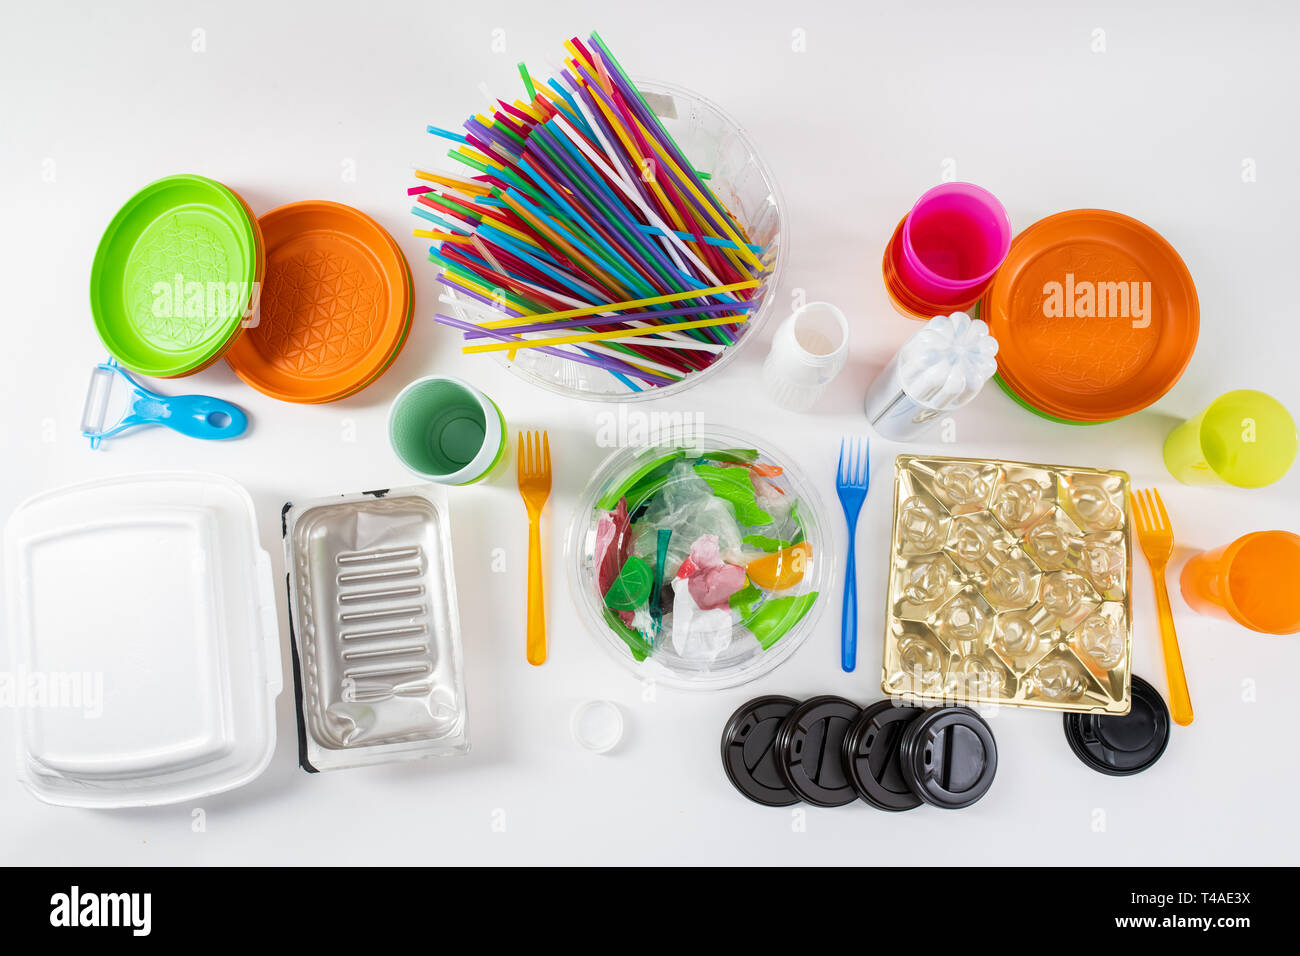 Colorful toxic stuff made of harmful plastic standing on white surface - Stock Image